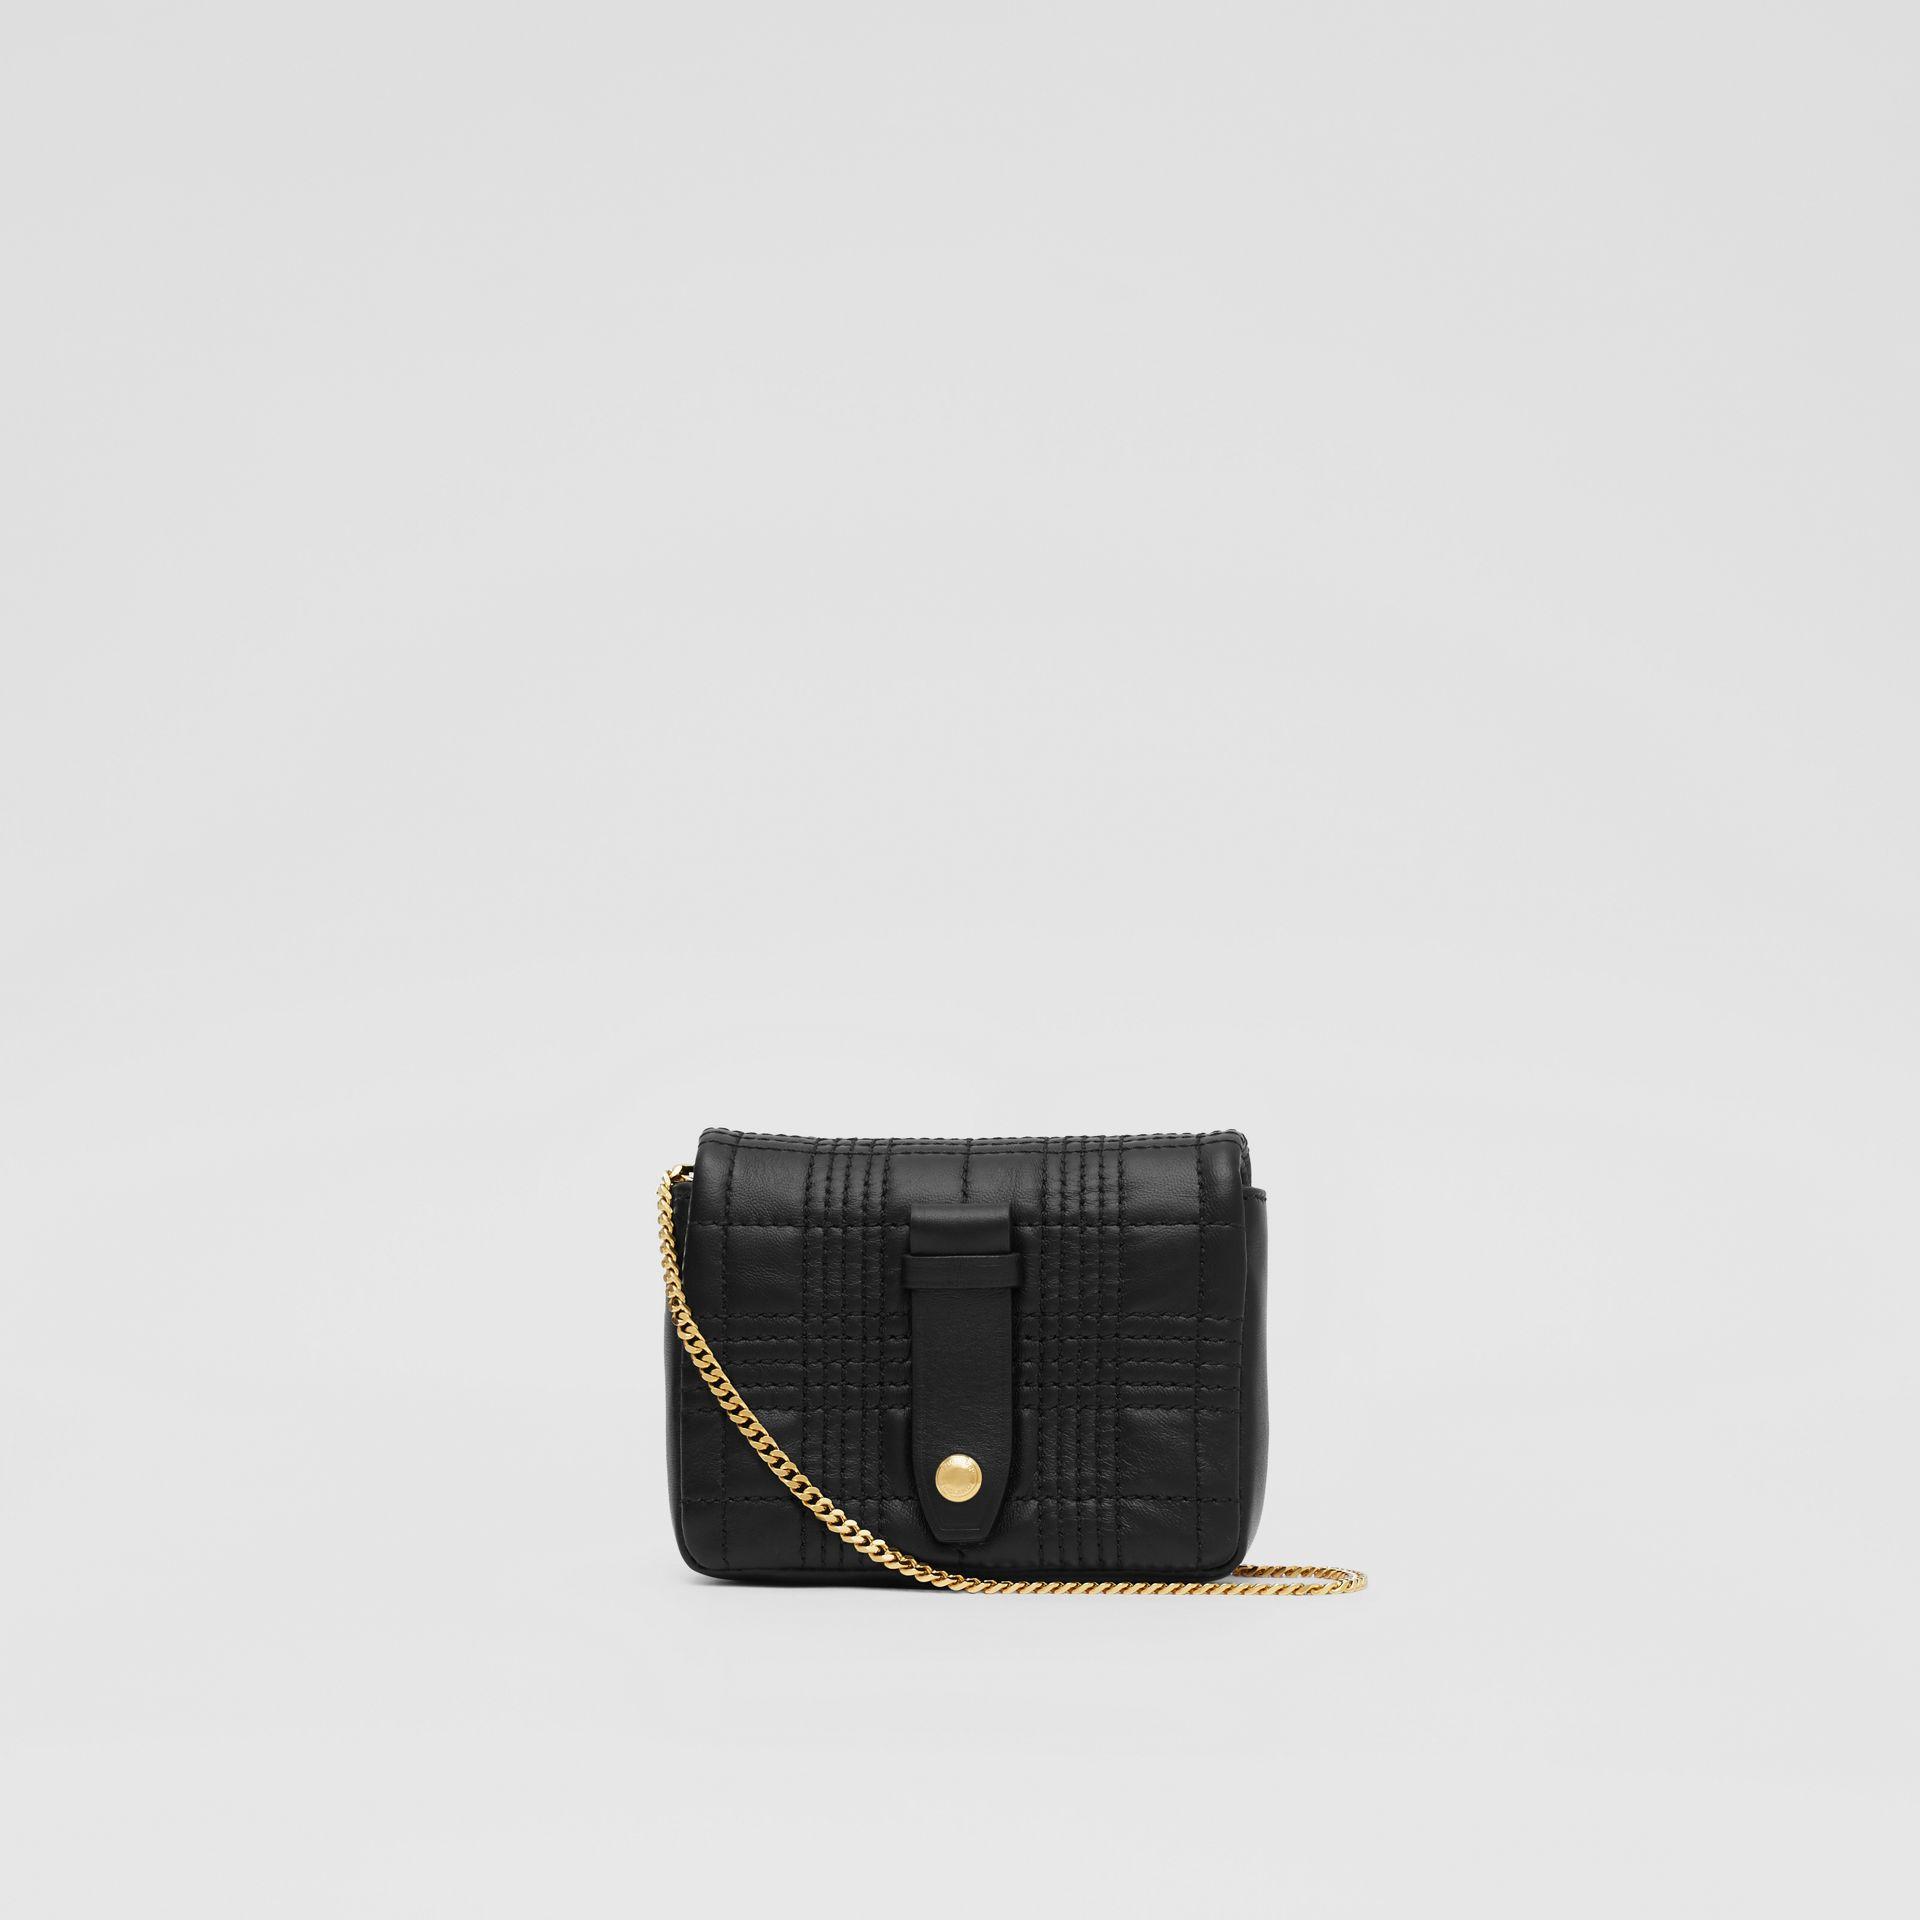 Micro Quilted Lambskin Lola Bag in Black - Women | Burberry - gallery image 5